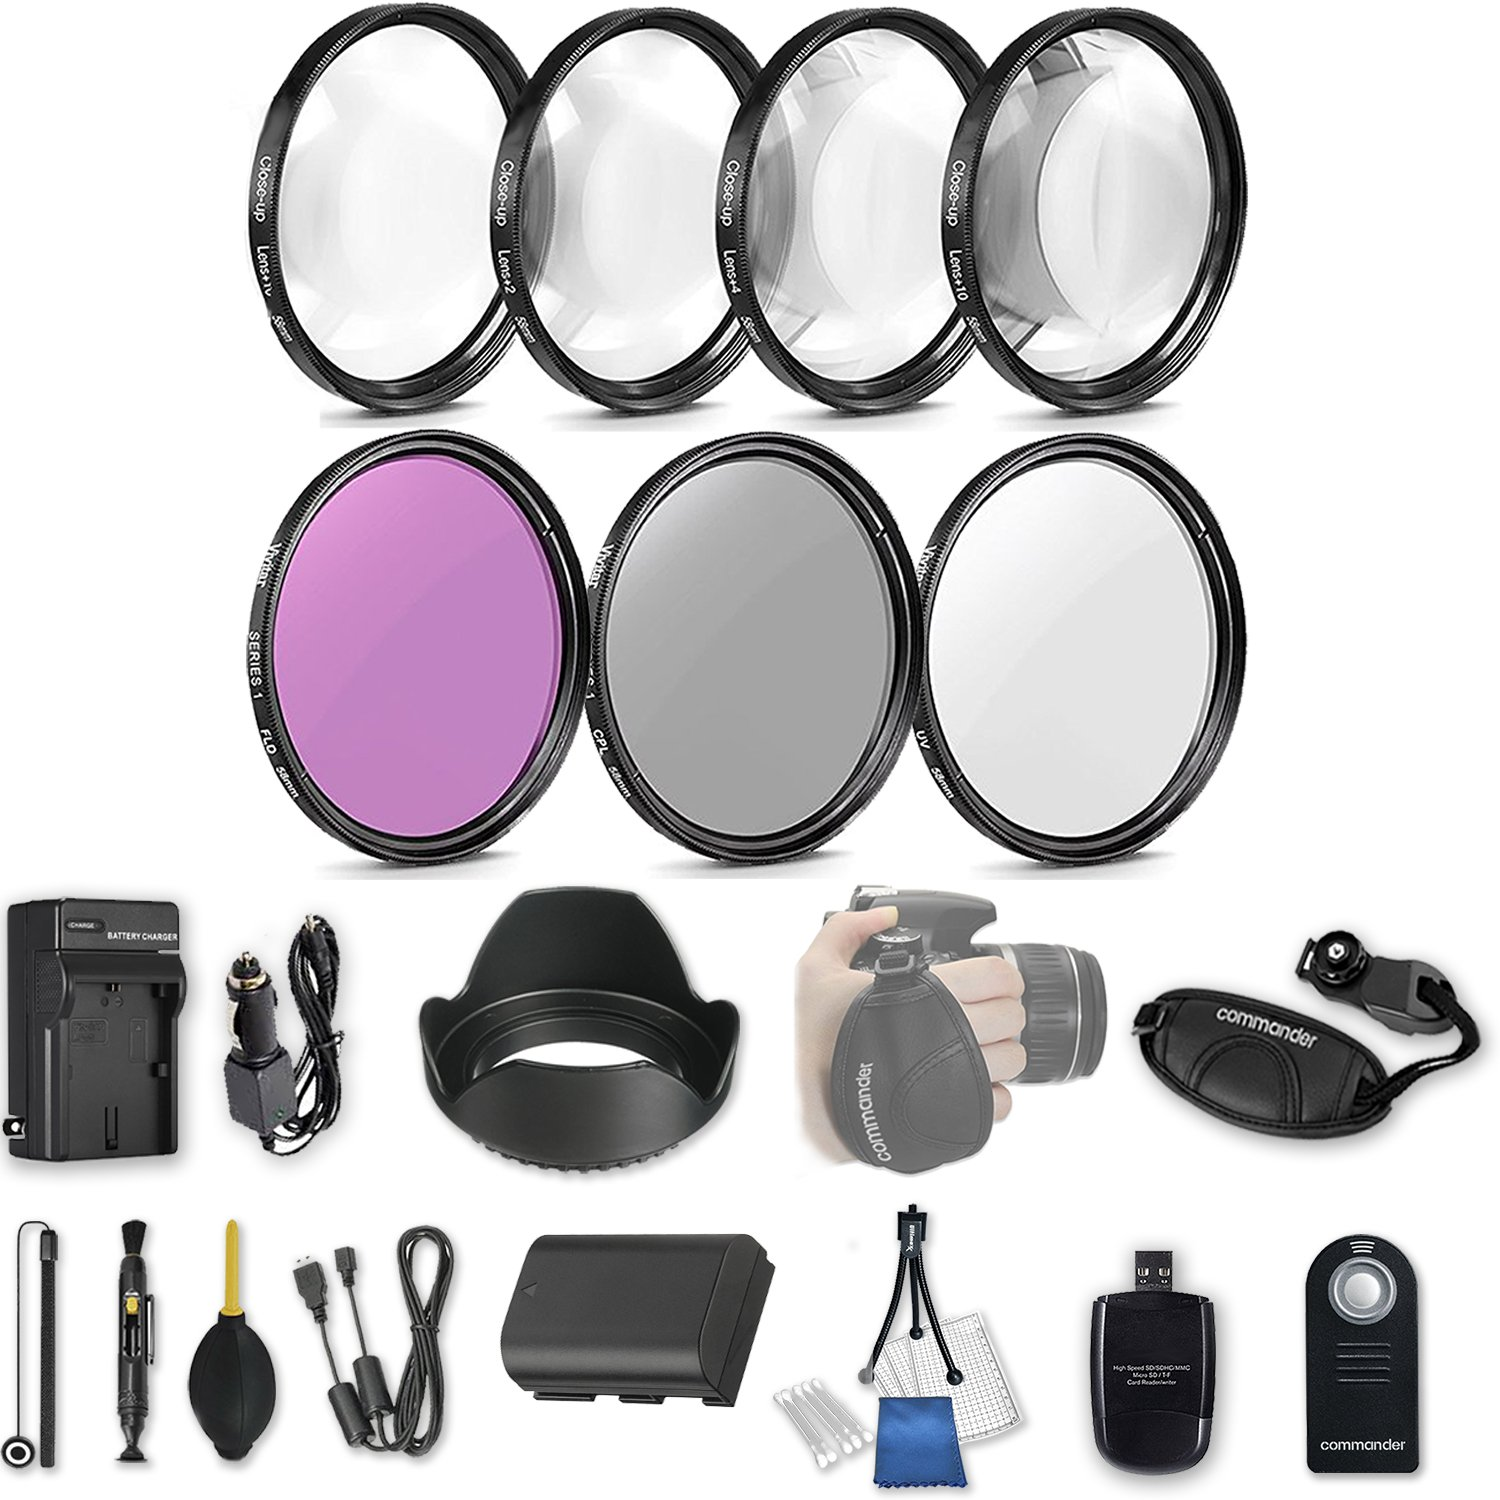 58mm 21 Pc Accessory Kit for Canon EOS Rebel 70D, 80D DSLRs with UV CPL FLD Filters, & 4 Piece Macro Close-Up Set, Battery, and More by 33rd Street